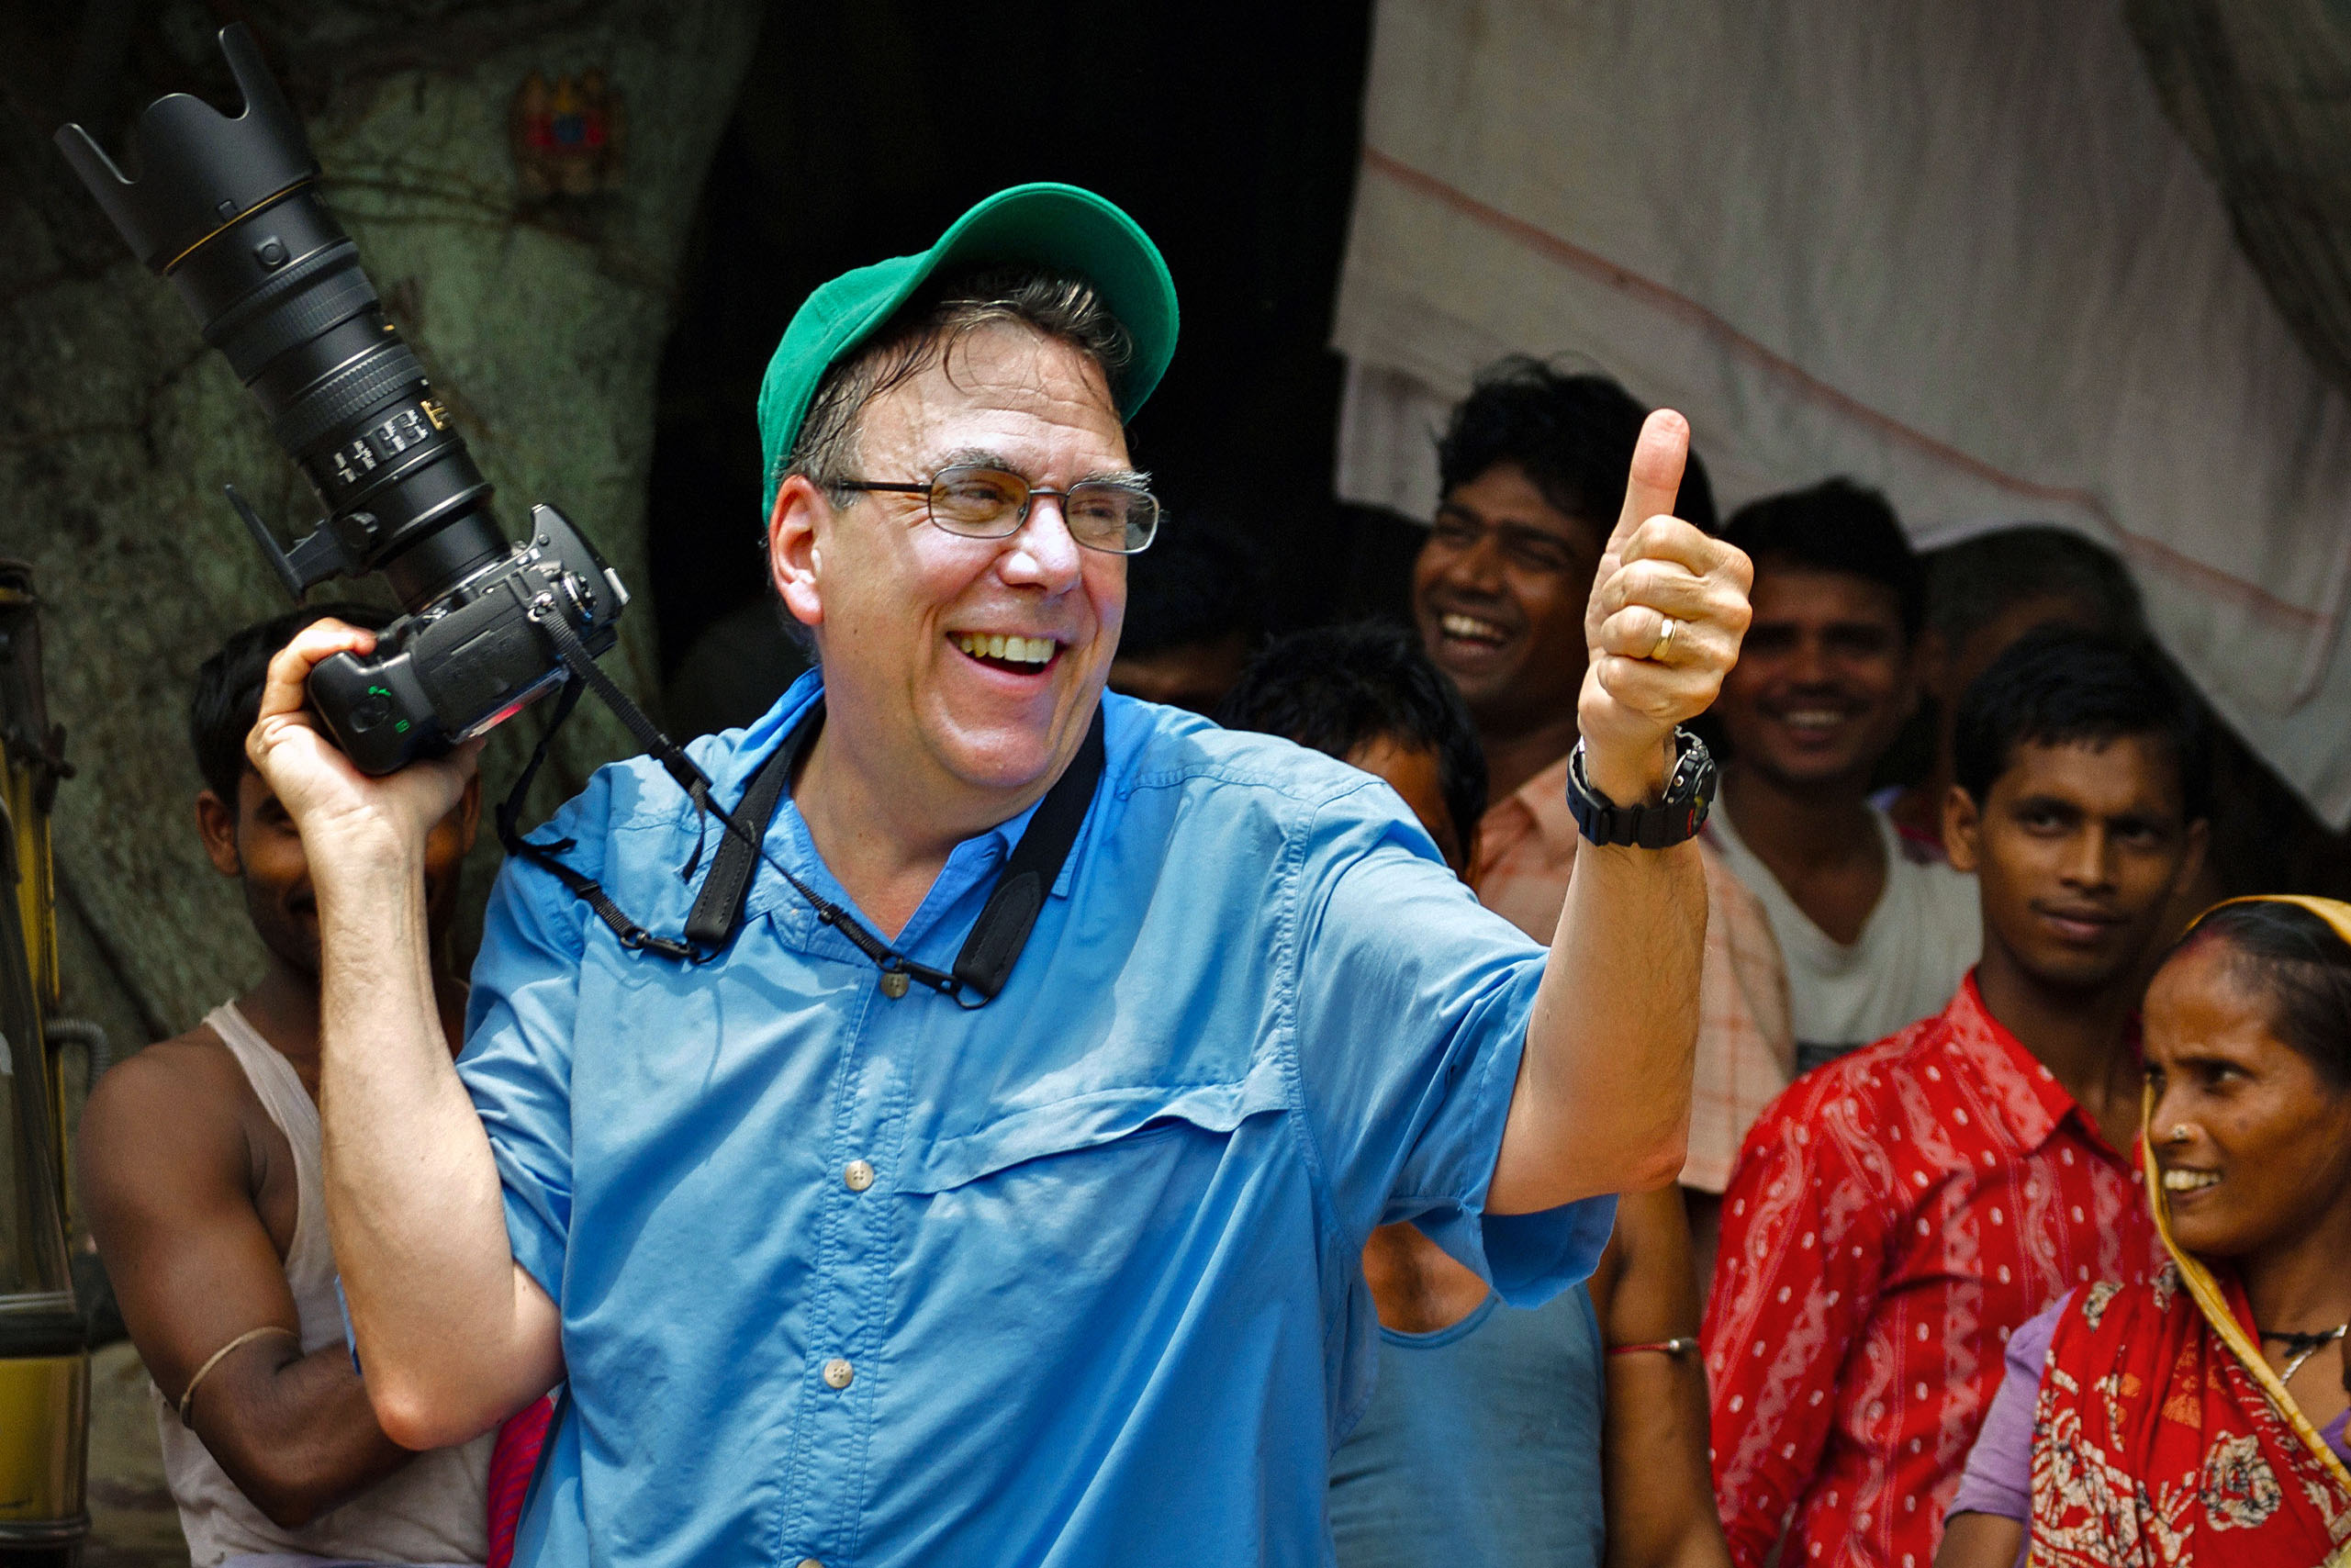 Photojournalist Steve Raymer with residents of Calcutta, India's former British colonial capital (Photo courtesy of Joseph Breen)